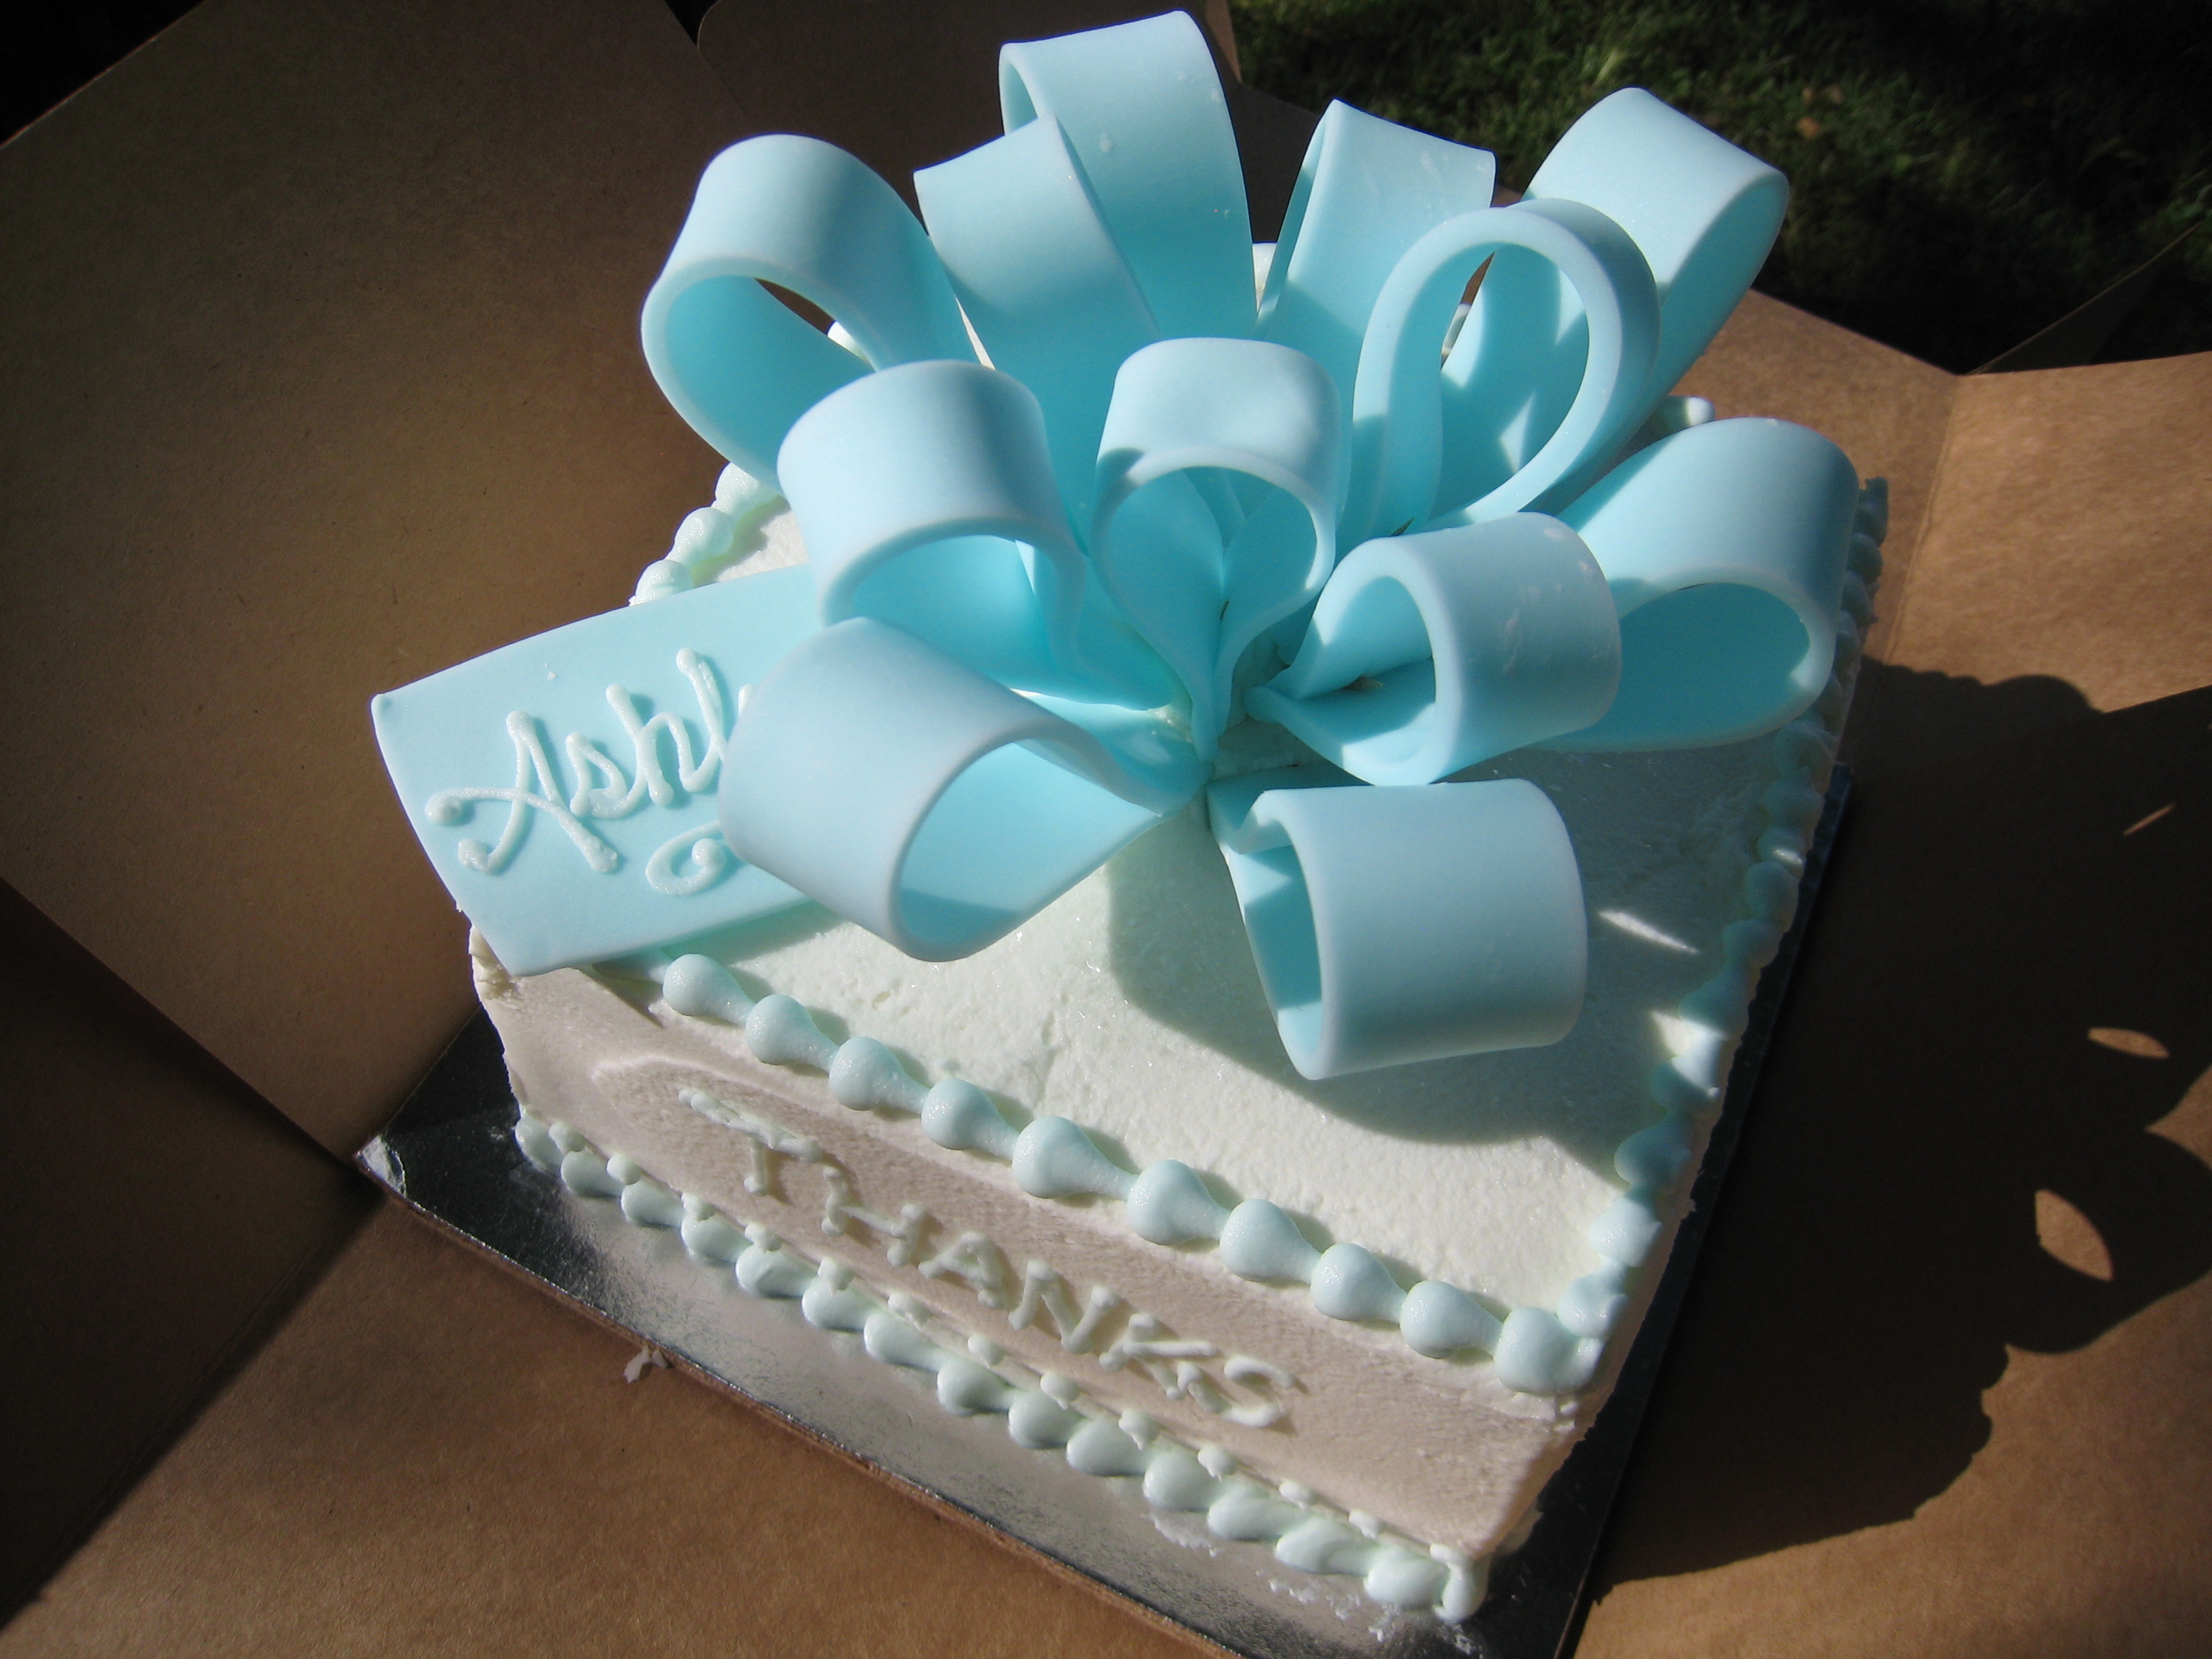 Cake Gift Images : A Great Day for a Gift Box Cake! Confectionery Cake Shop